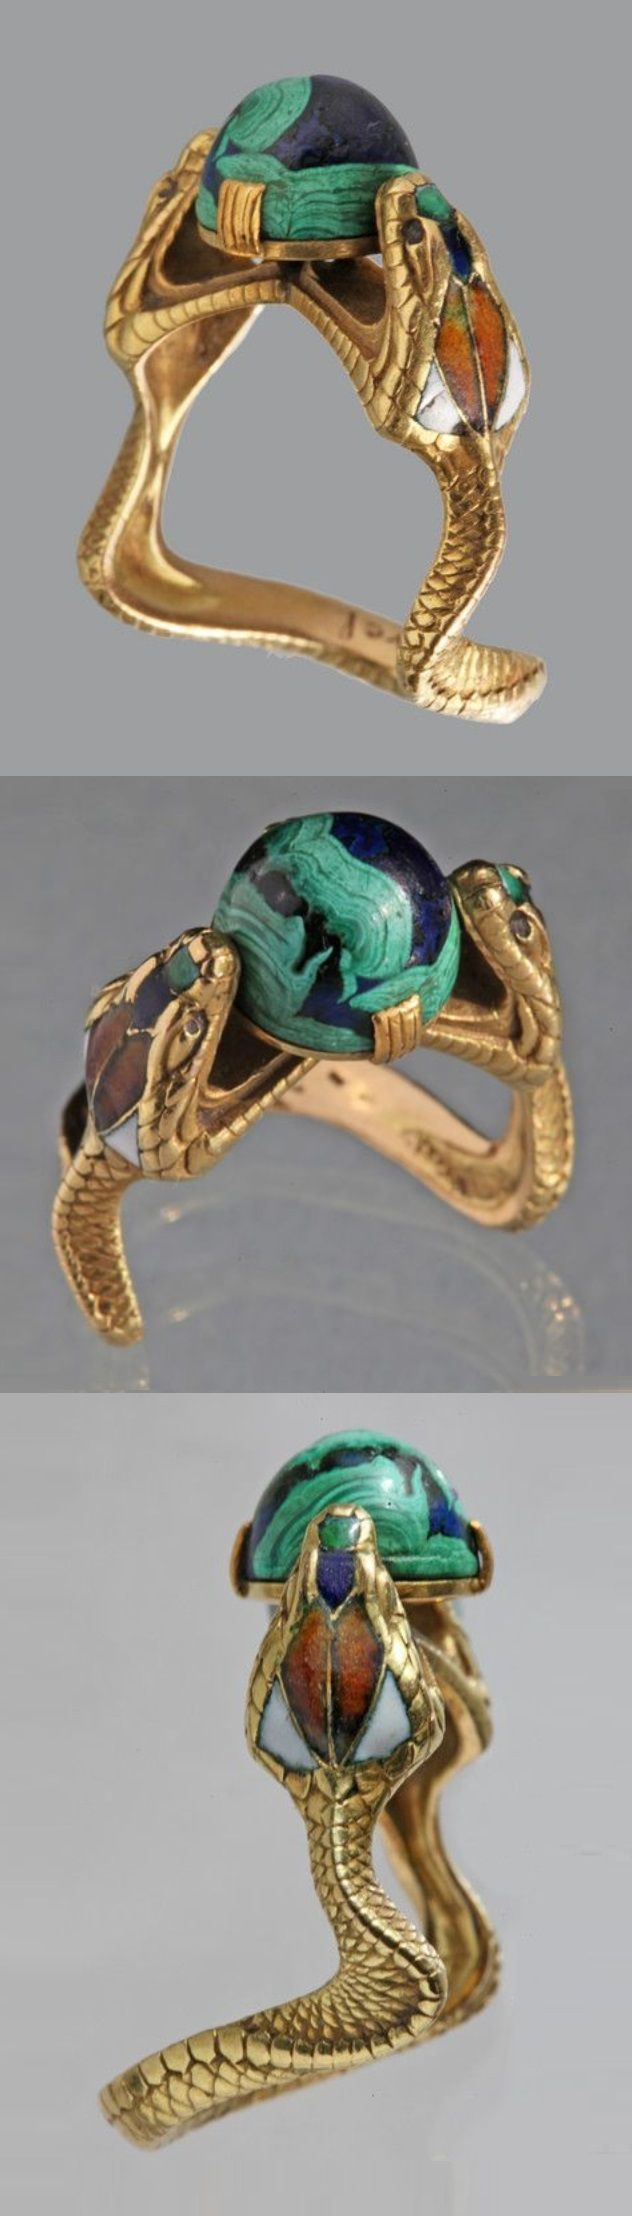 A Symbolist Serpent Ring, CHARLES BOUTET DE MONVEL, French, circa 1900. The…